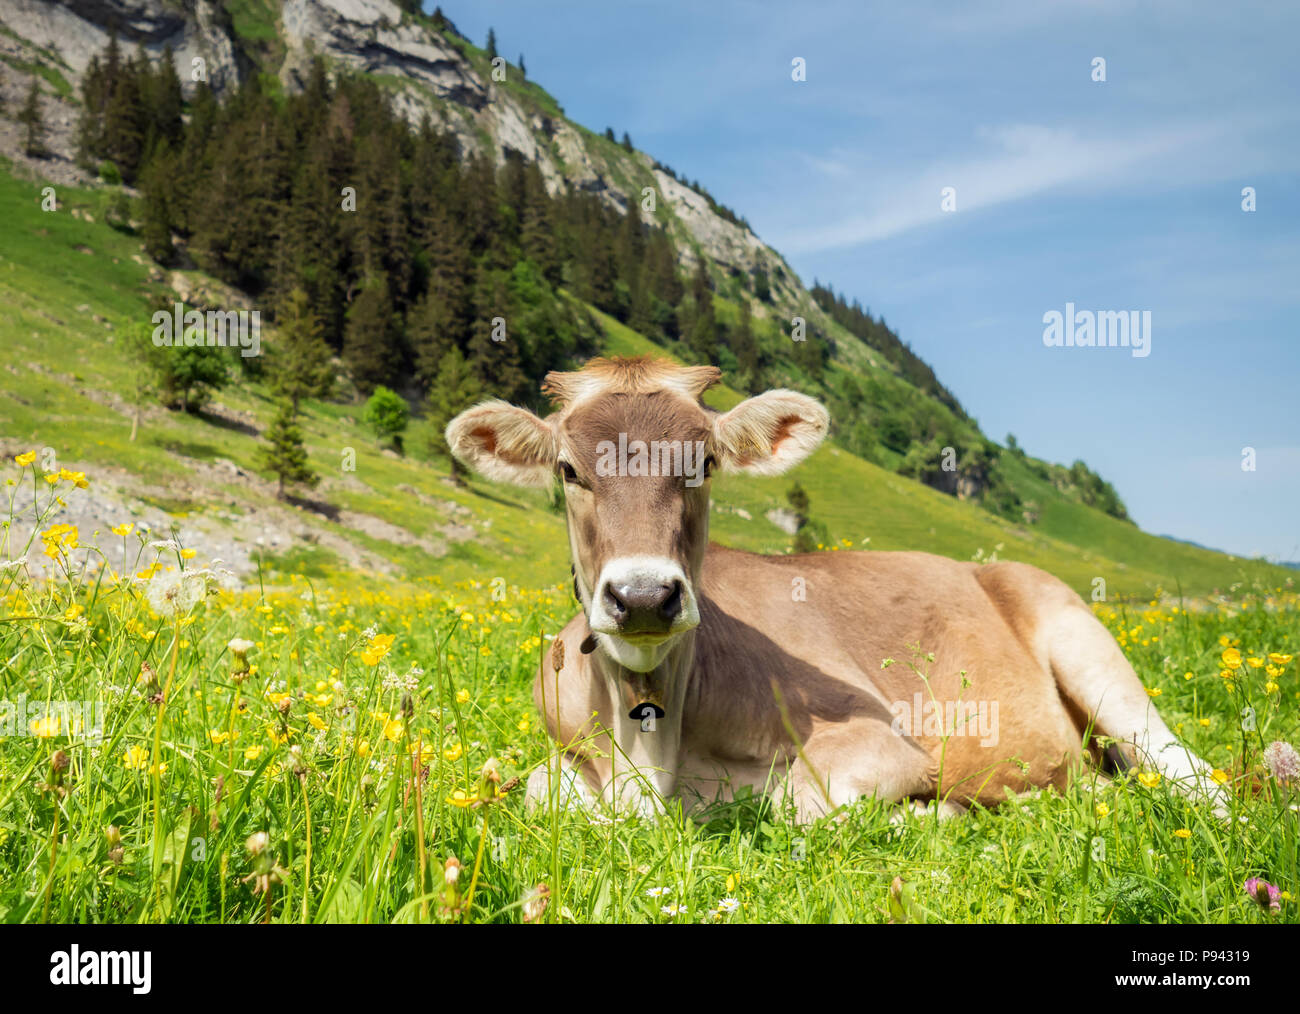 Young calf in Appenzell Switzerland Stock Photo